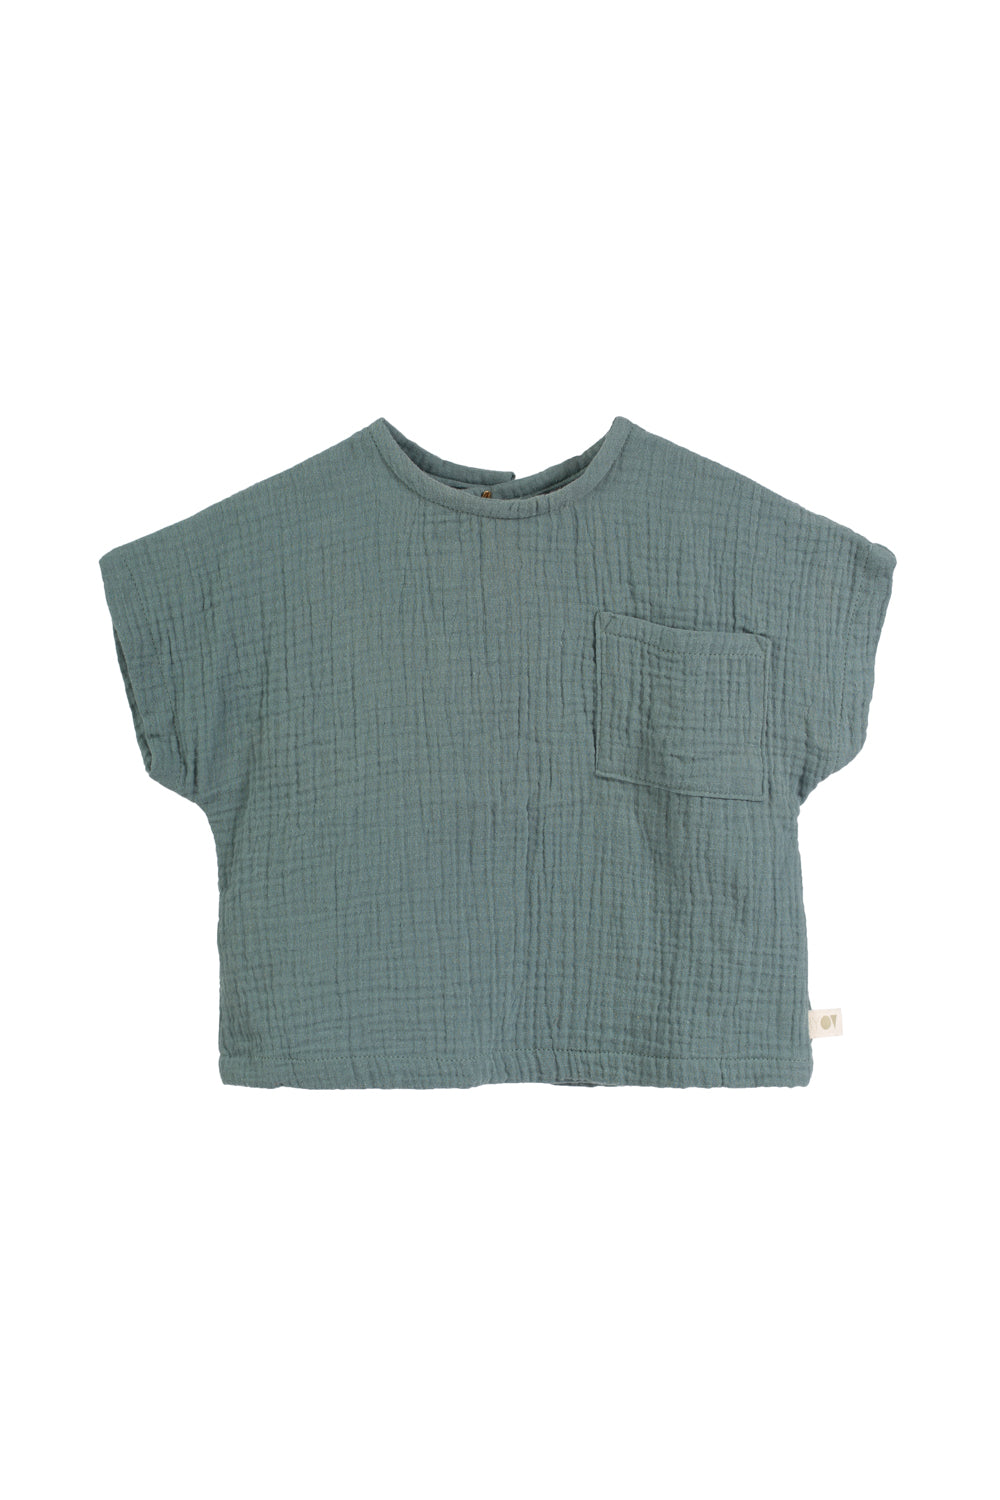 Bosque | sea blue t-shirt